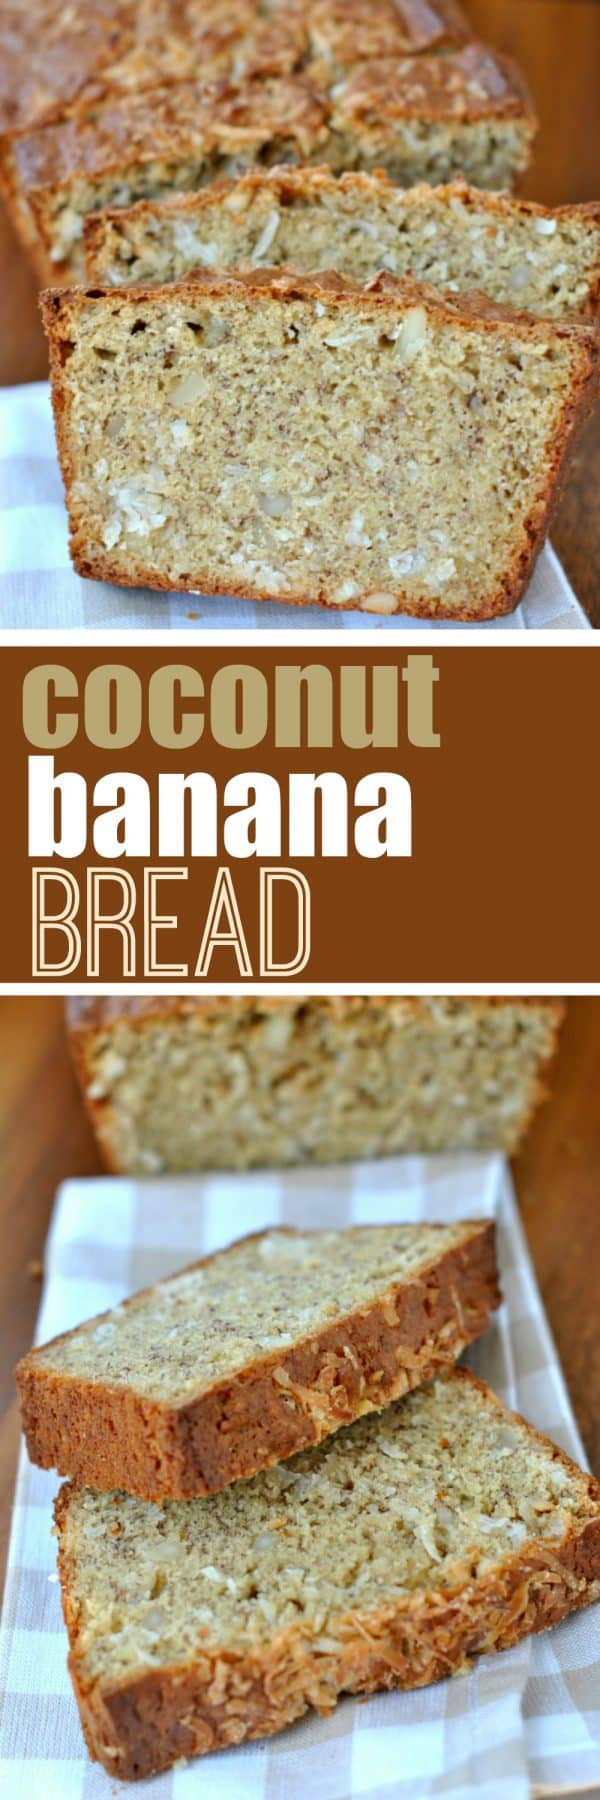 Turn your traditional Banana Bread recipe into something even better! I added shredded coconut and macadamia nuts to my favorite recipe! INCREDIBLE.